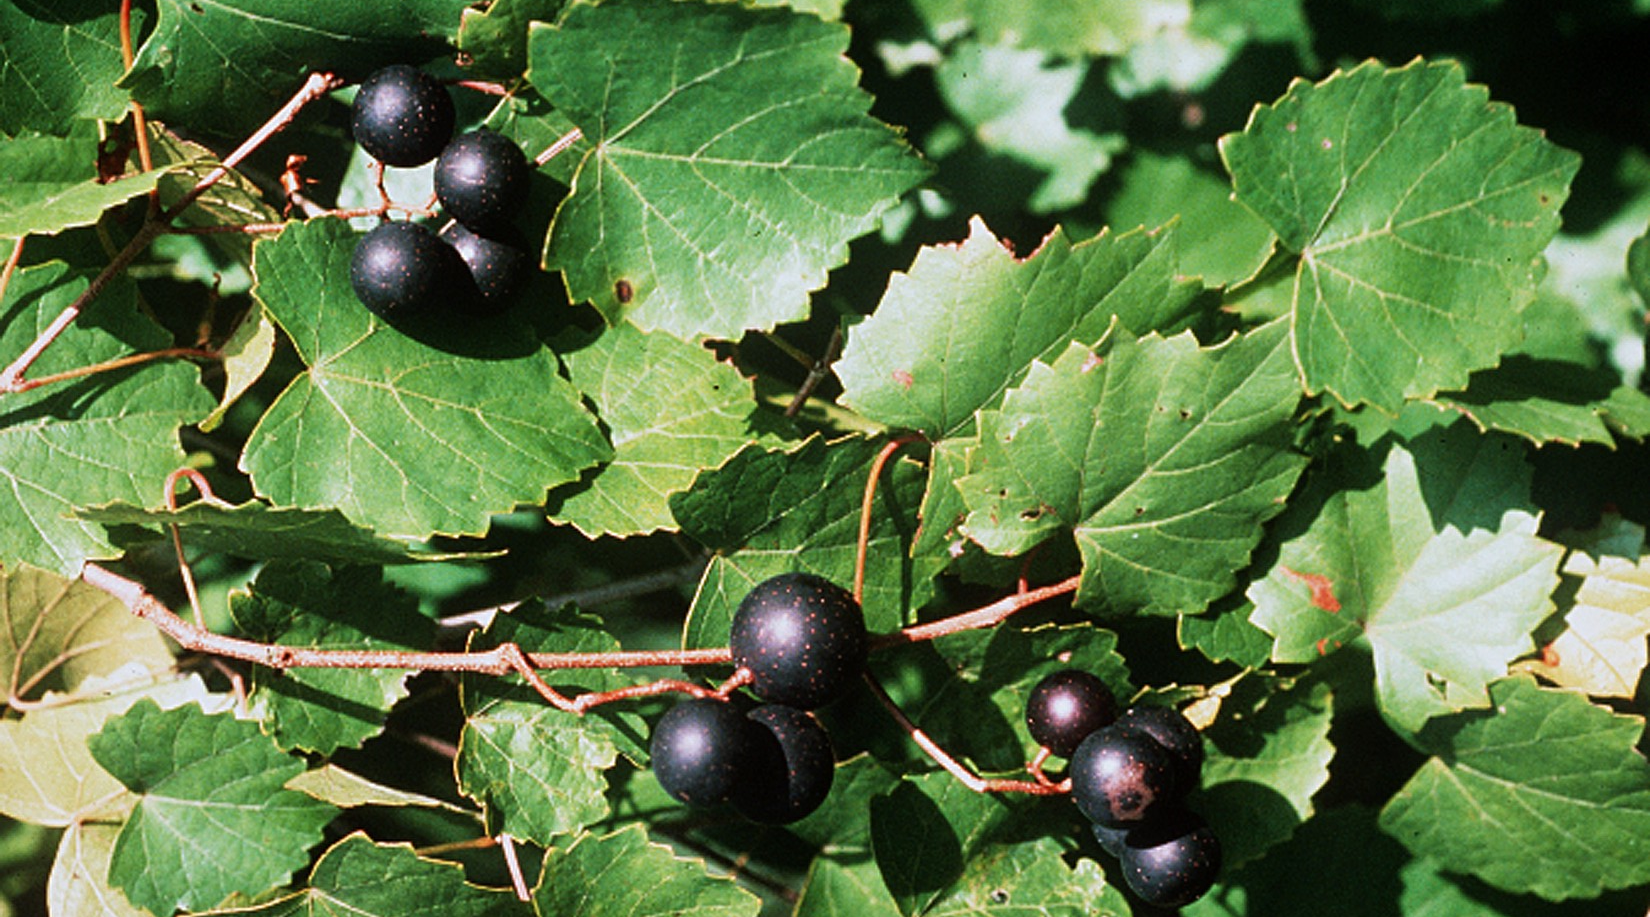 Vitis rotundifolia - grapes and leaves